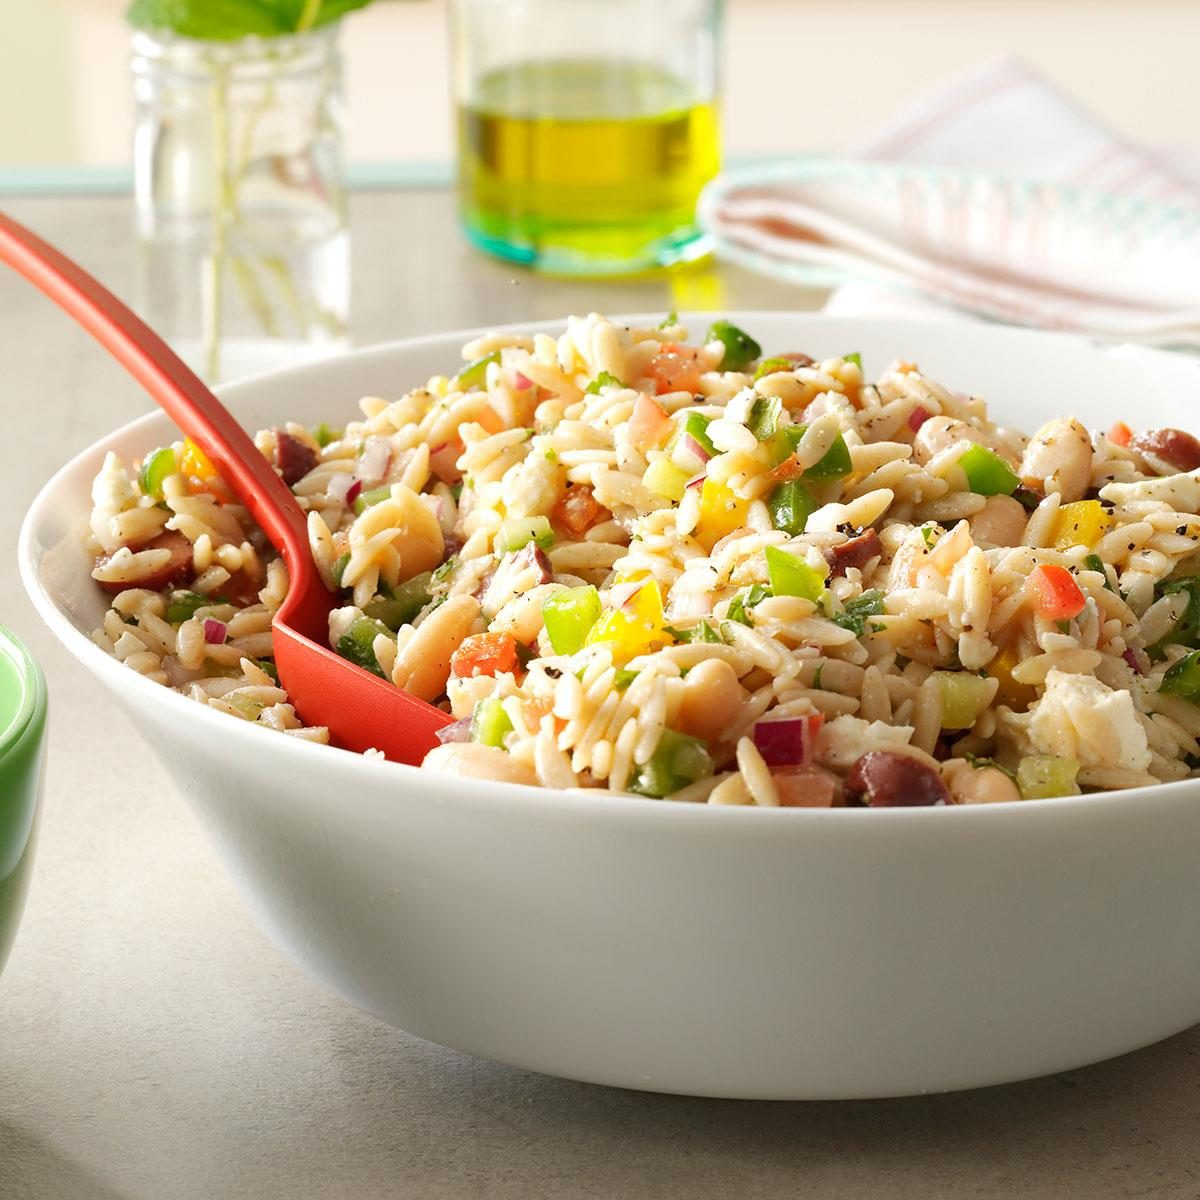 Day 16: Whole Wheat Orzo Salad